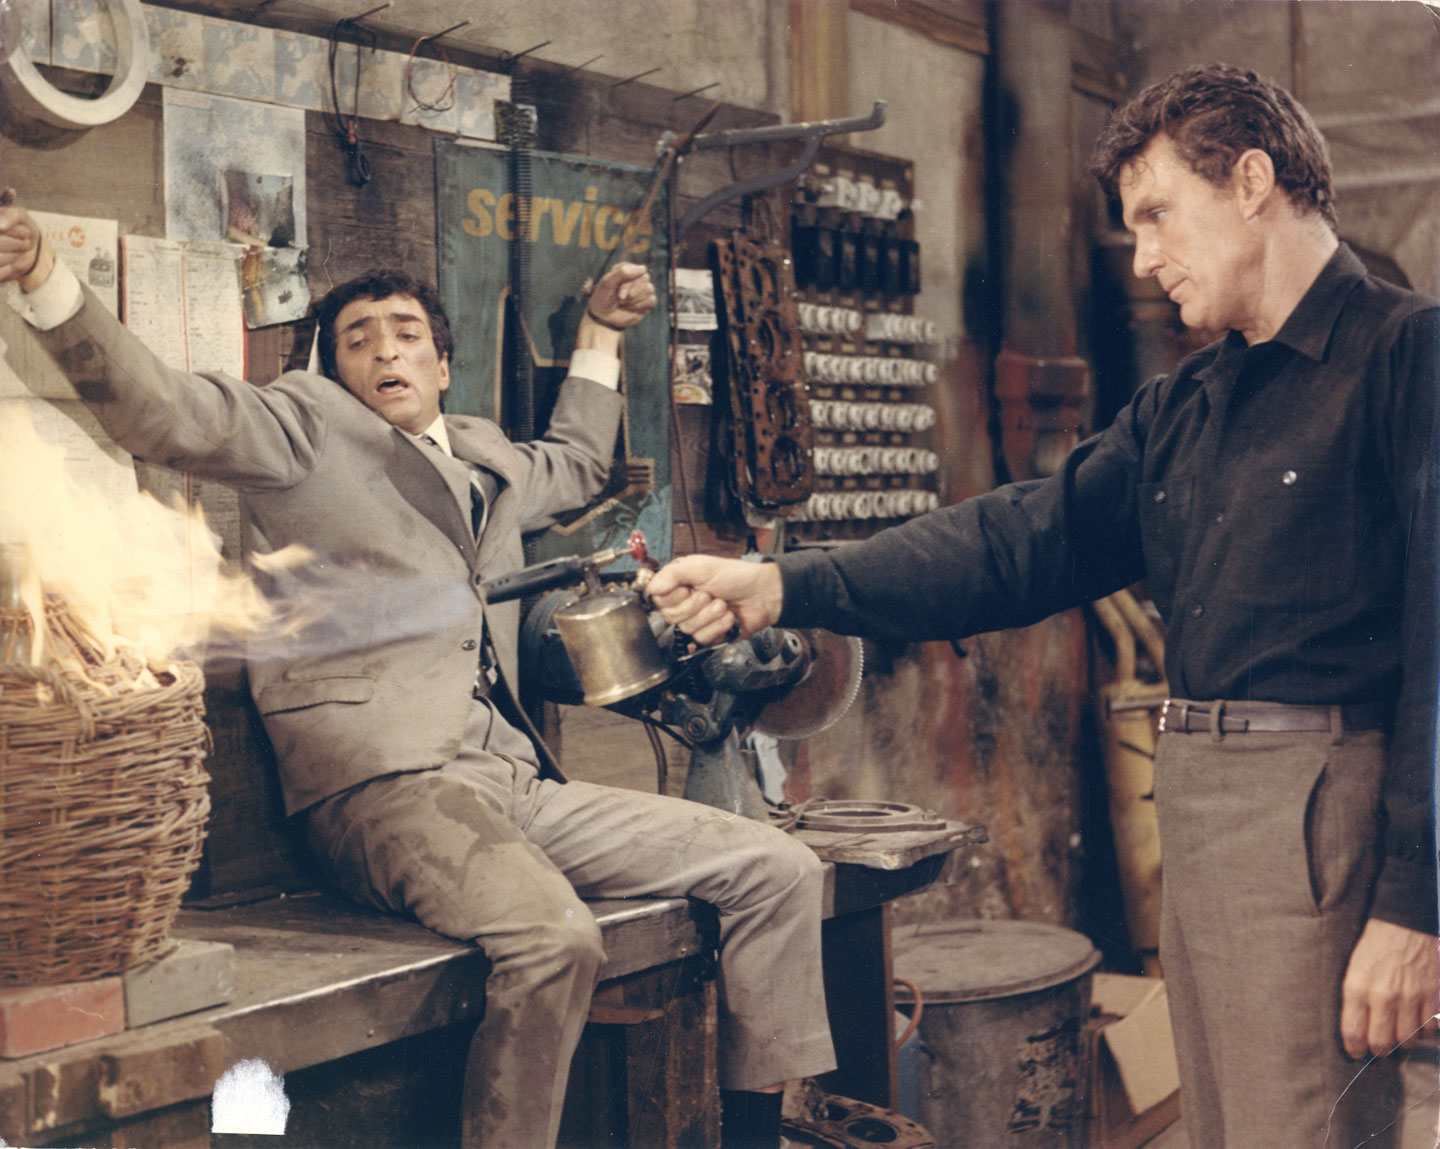 Marcel Dolé: Film Still from Action Man (Le Soleil des Voyous) (1967), starring Robert Stack